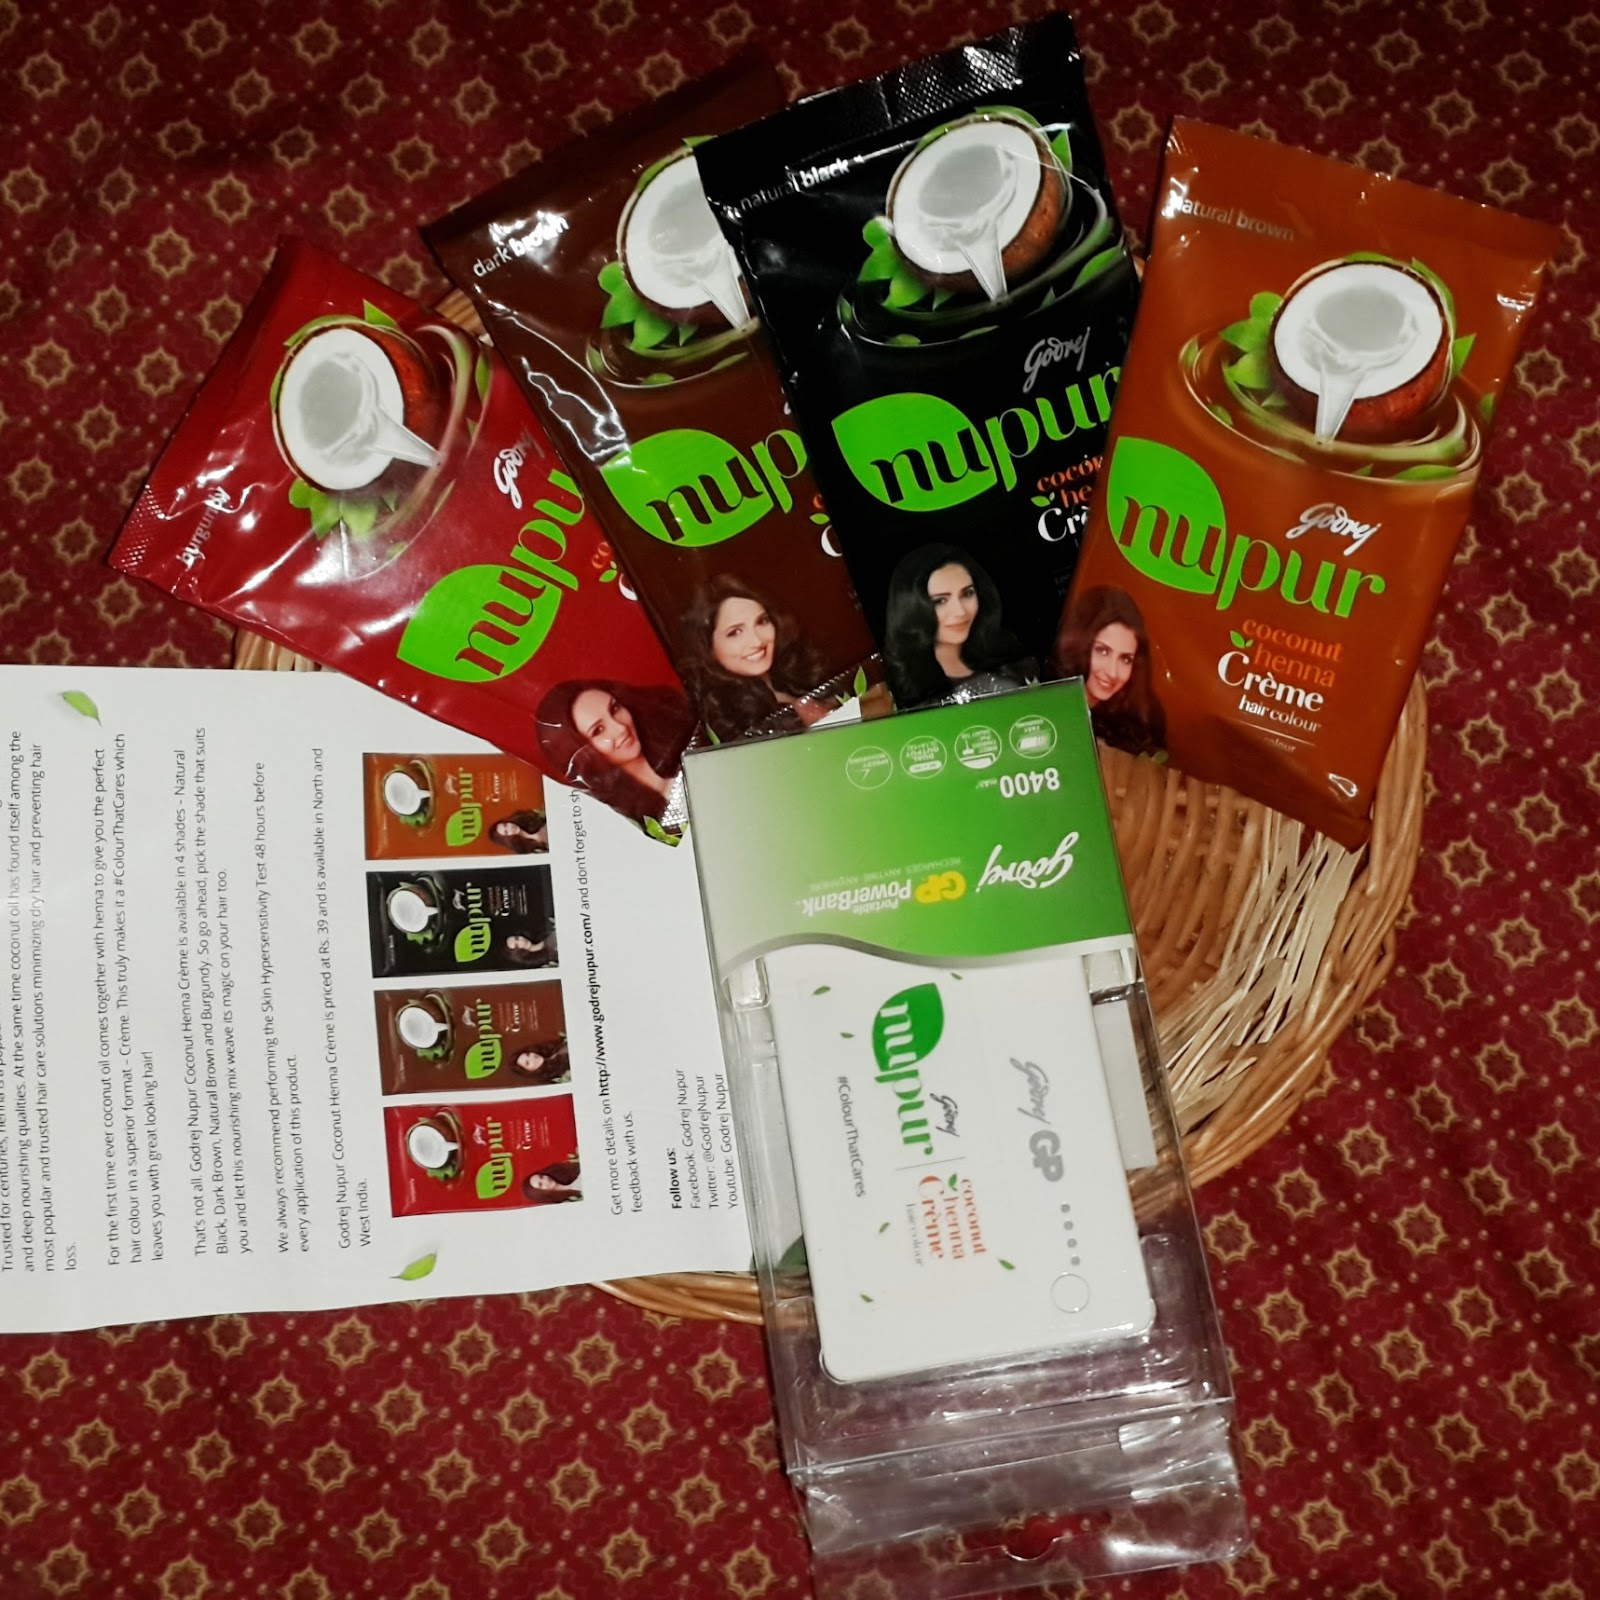 Nupur Henna: All The Rage: Review : Godrej Nupur Coconut Henna Creme